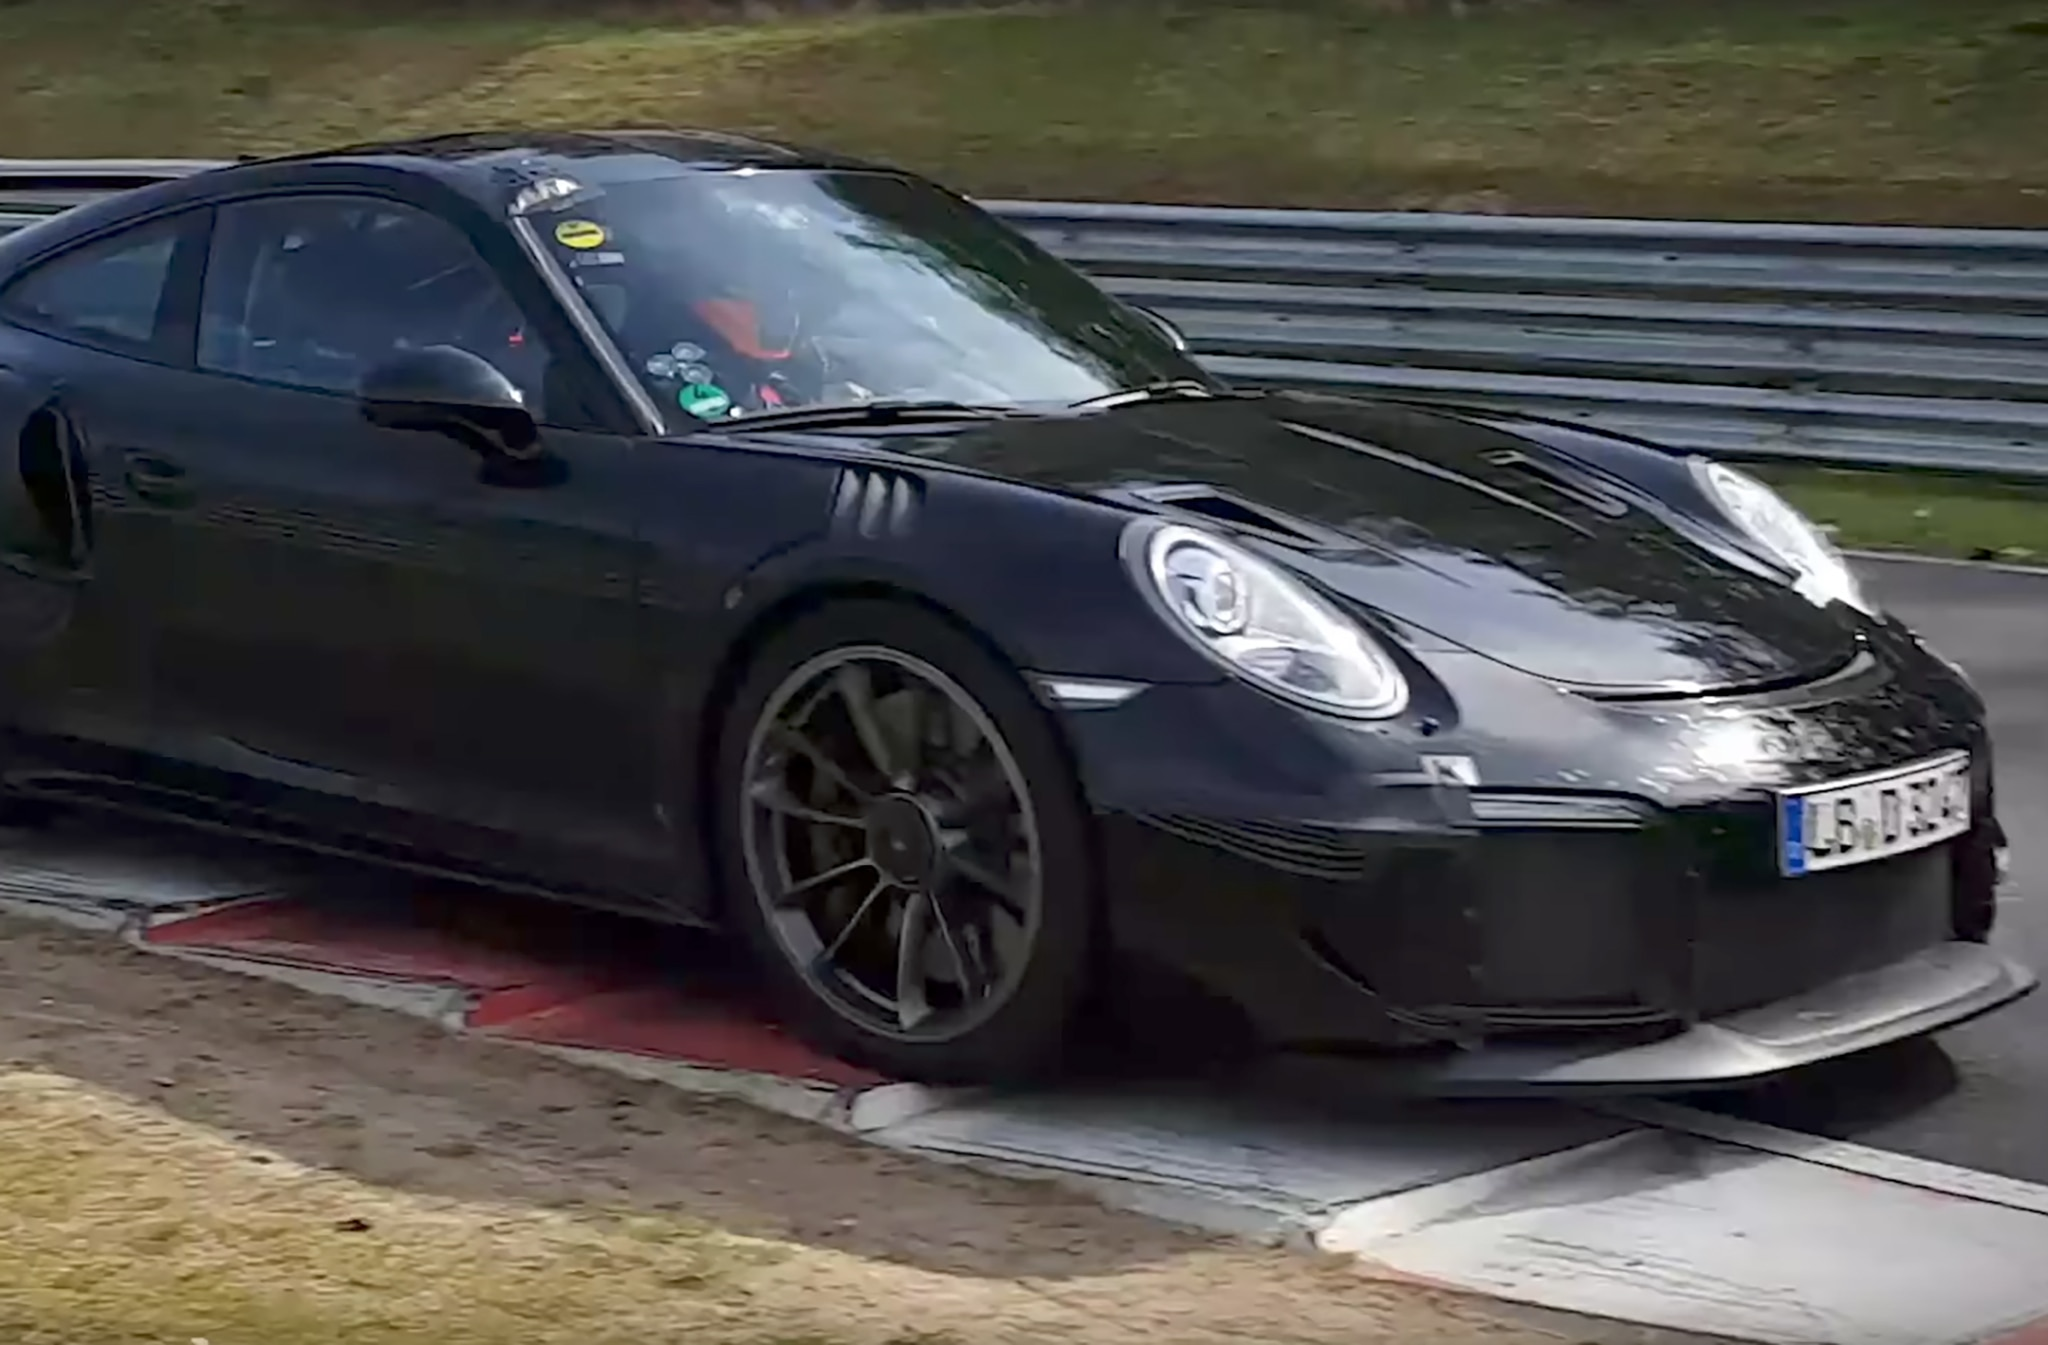 Porsche-911-GT2-RS-Close Interesting Porsche 911 Gt2 and Gt3 Cars Trend